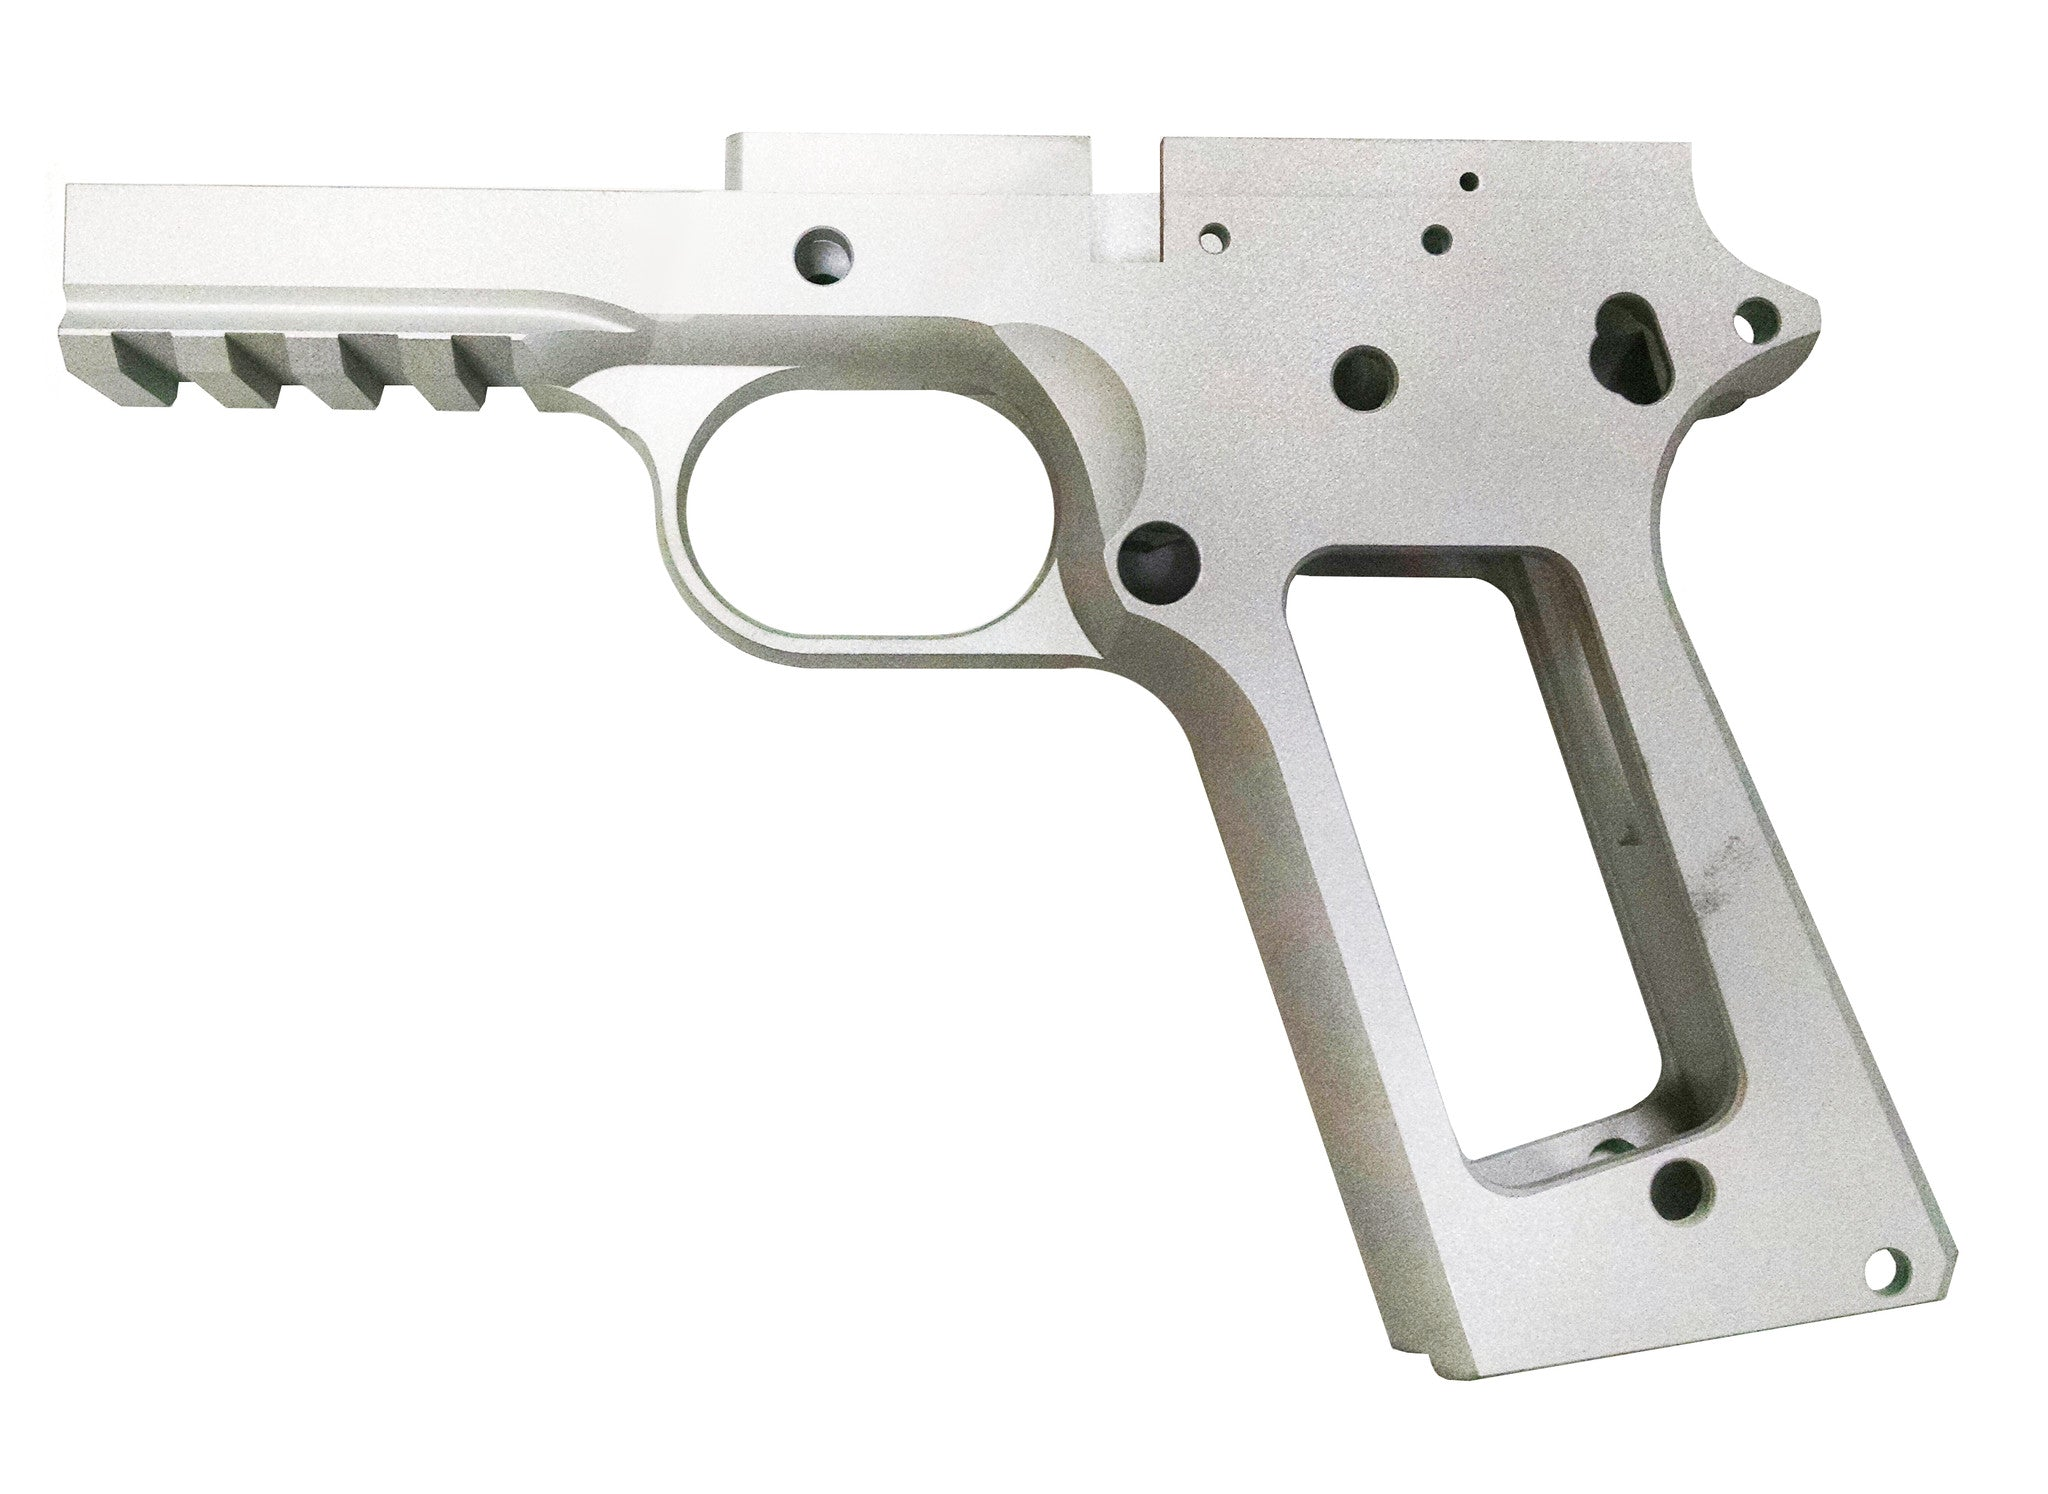 1911 80% FULL SIZE GI FRAME 7075 BILLET ALUMINUM SMOOTH GRIP W/RAIL ...